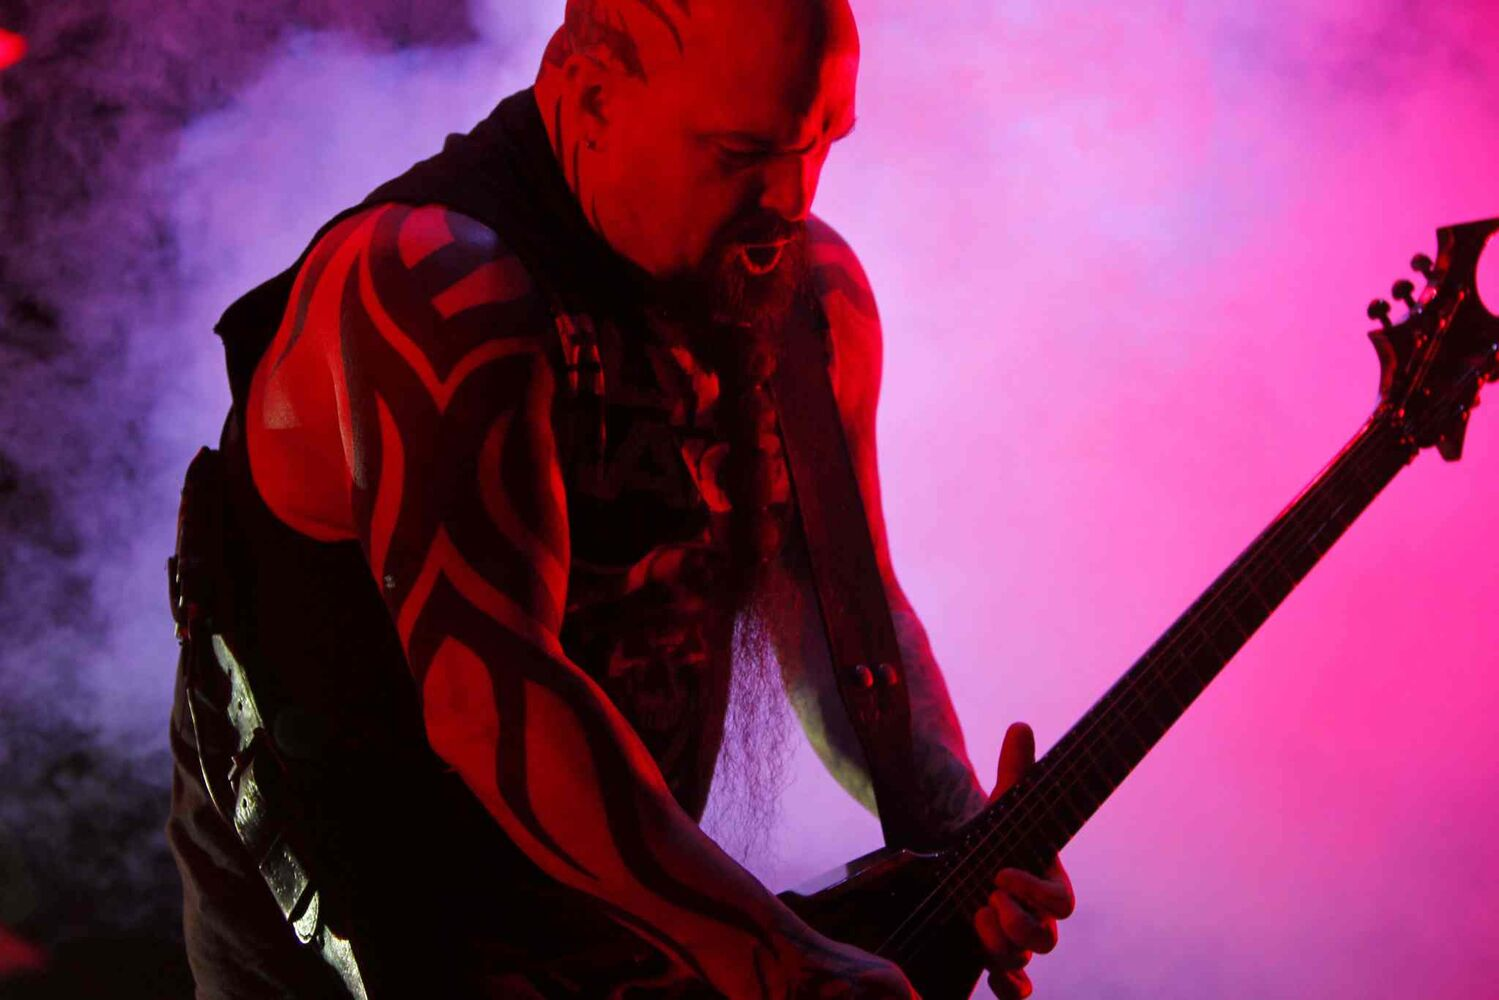 Guitarist Kerry King blasts out a guitar solo.